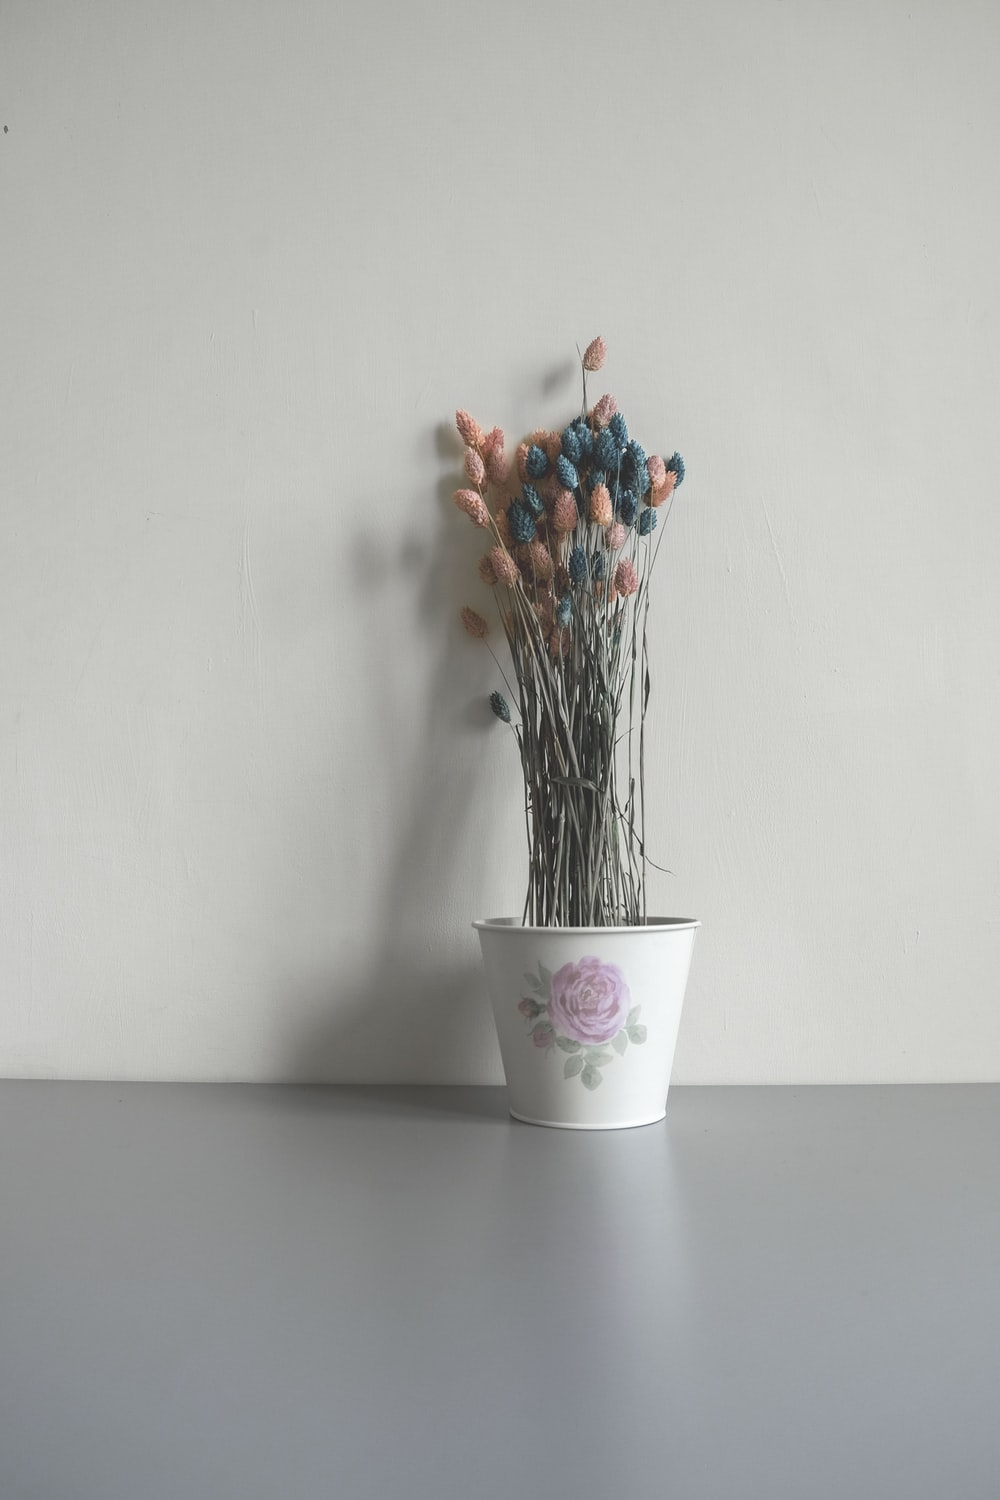 White Dried Flower Pictures Download Free Images On Unsplash